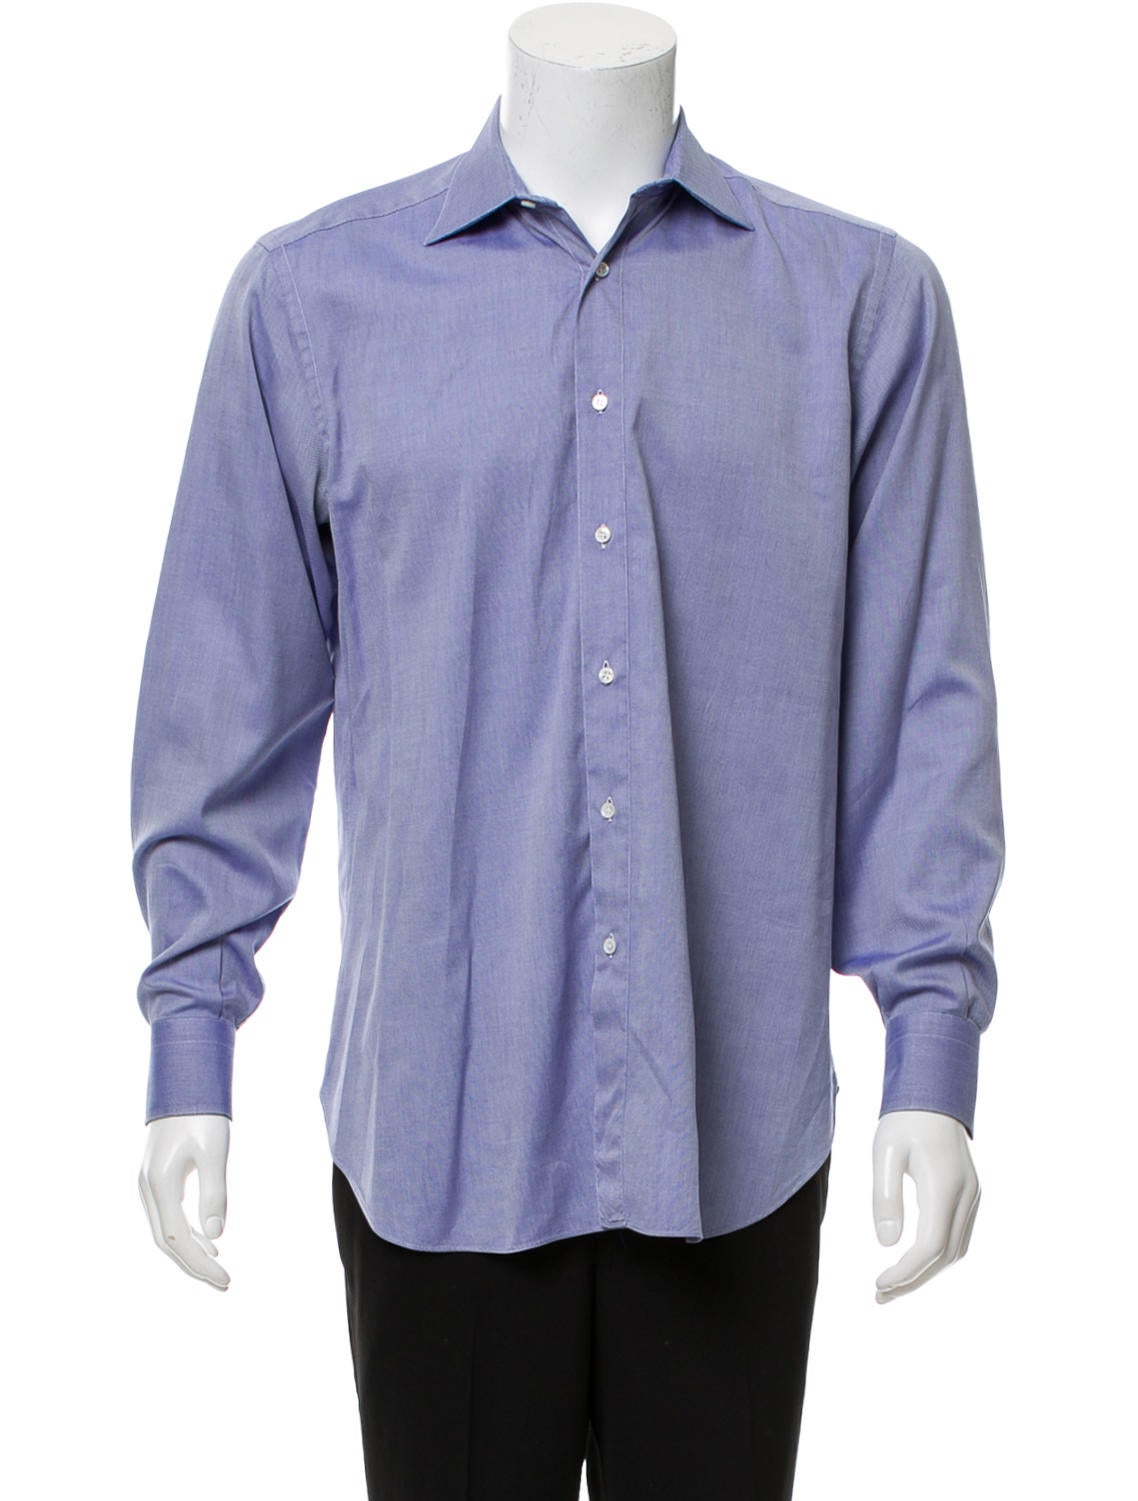 Brioni Woven Button Up Shirt Clothing Bro24561 The Realreal